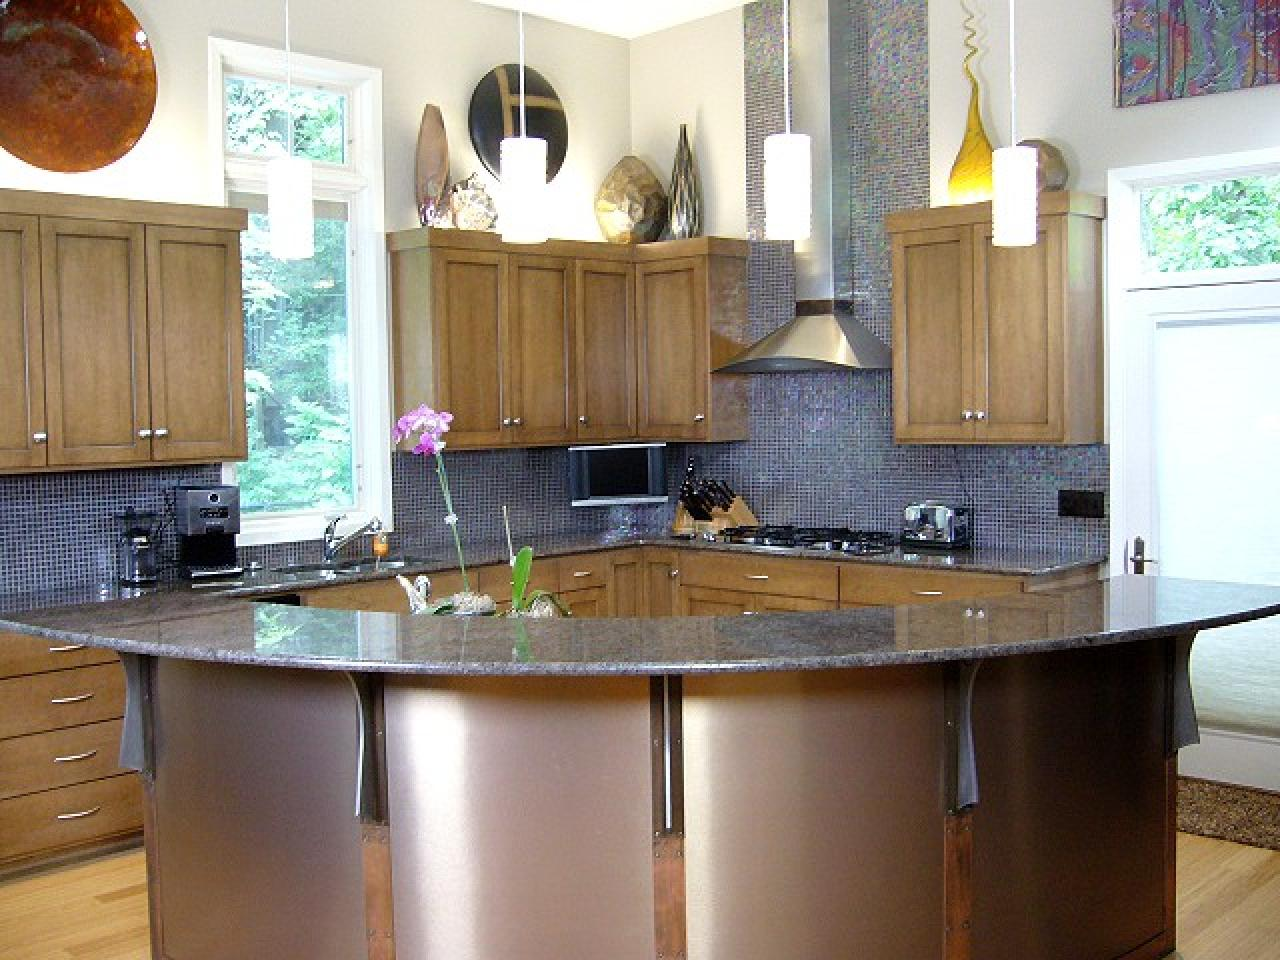 Cost cutting kitchen remodeling ideas diy kitchen design for Kitchen redesign ideas